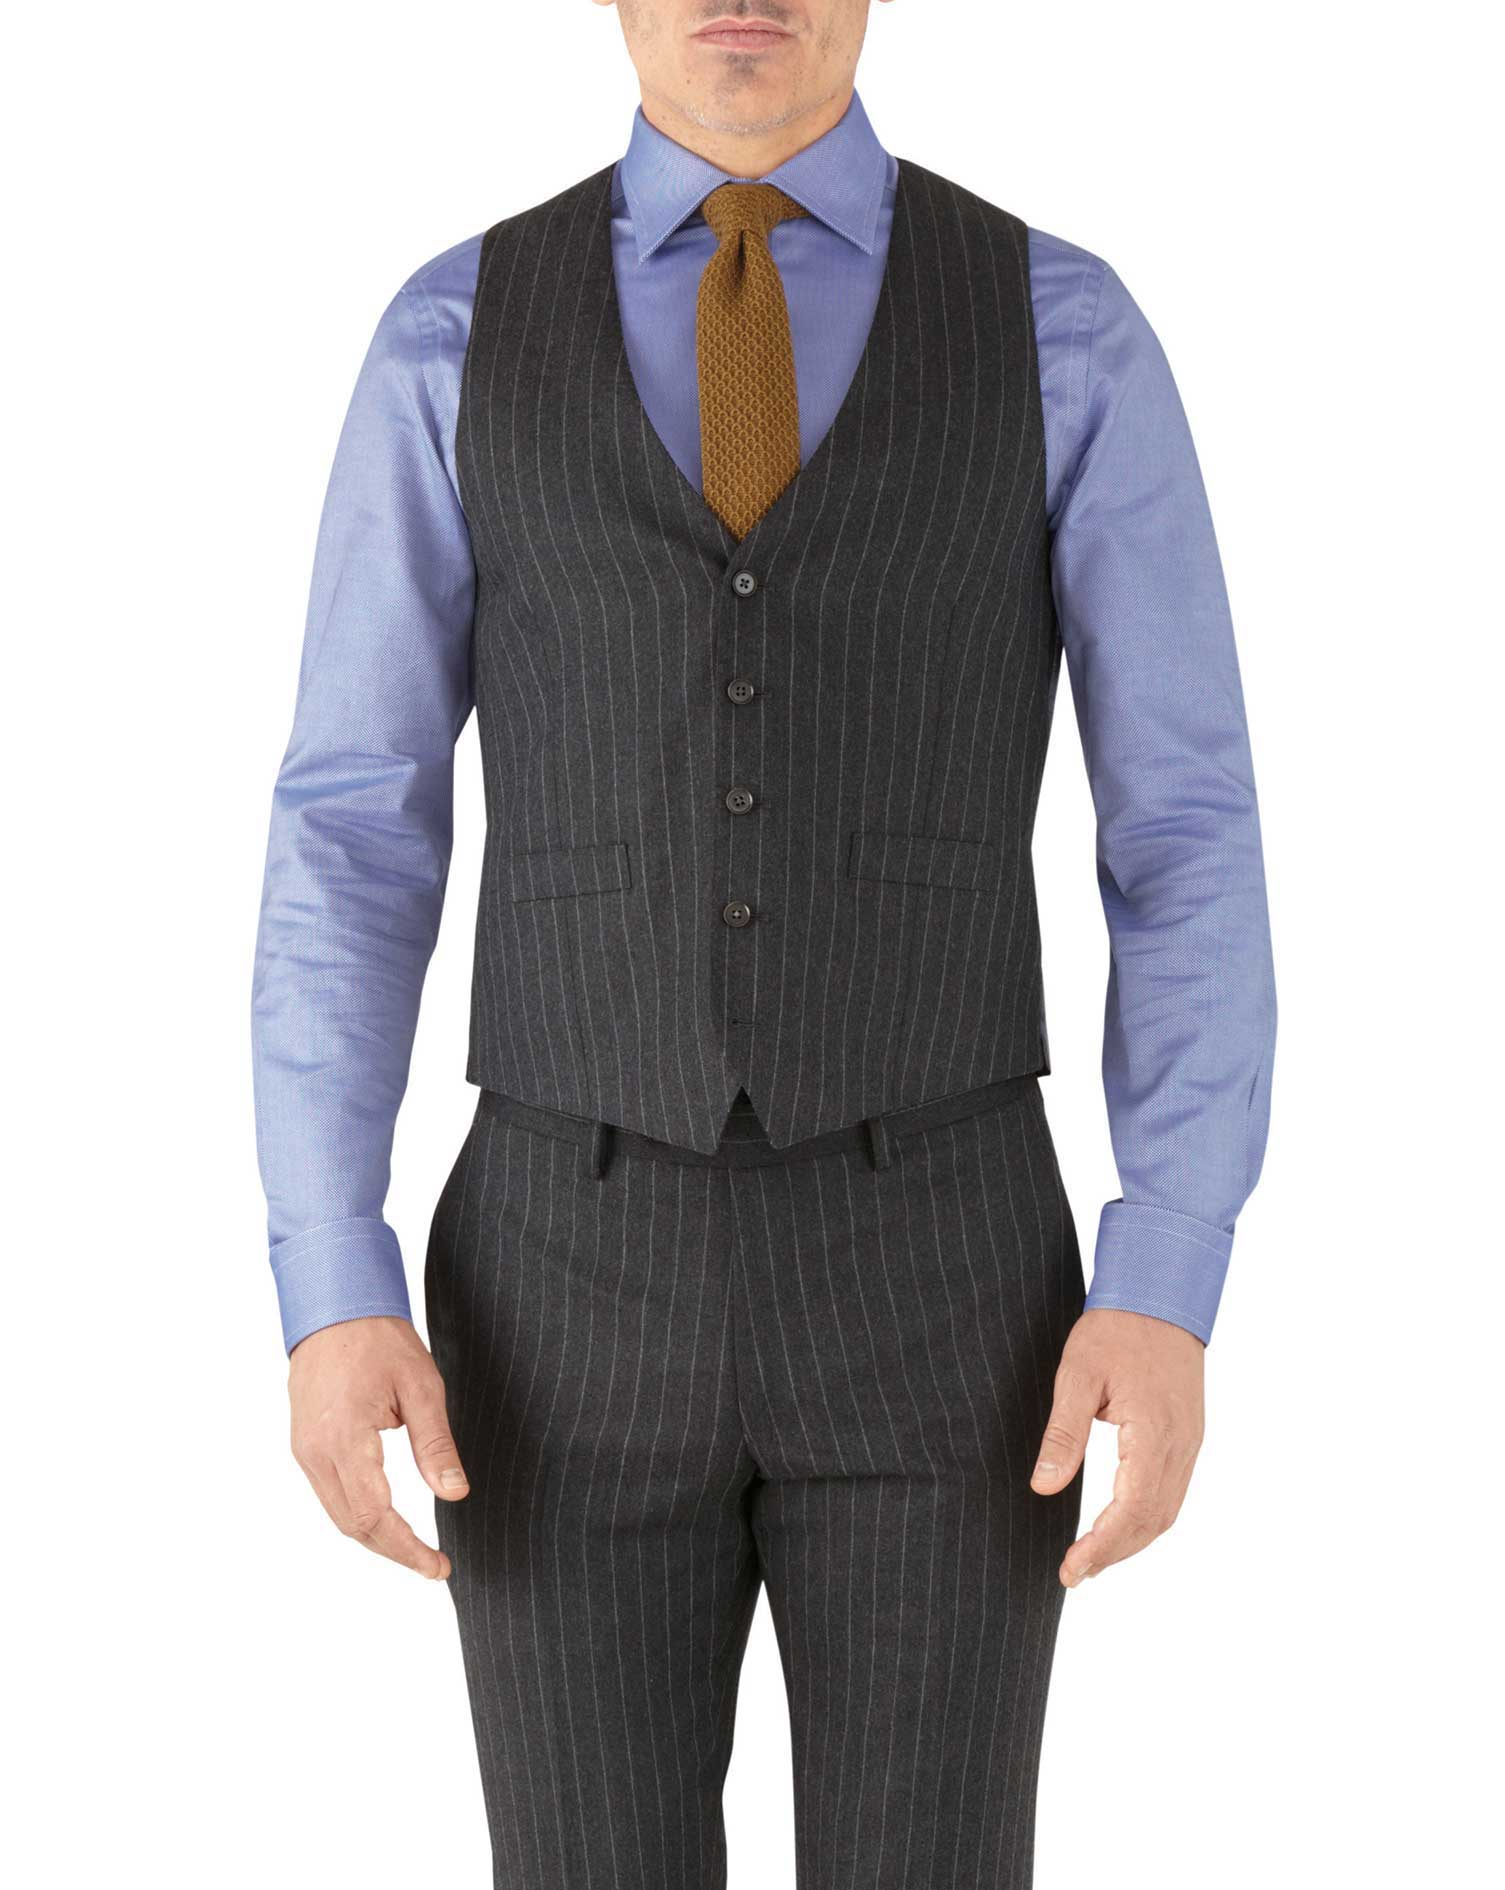 Charcoal Stripe Adjustable Fit Flannel Business Suit Wool Waistcoat Size w40 by Charles Tyrwhitt